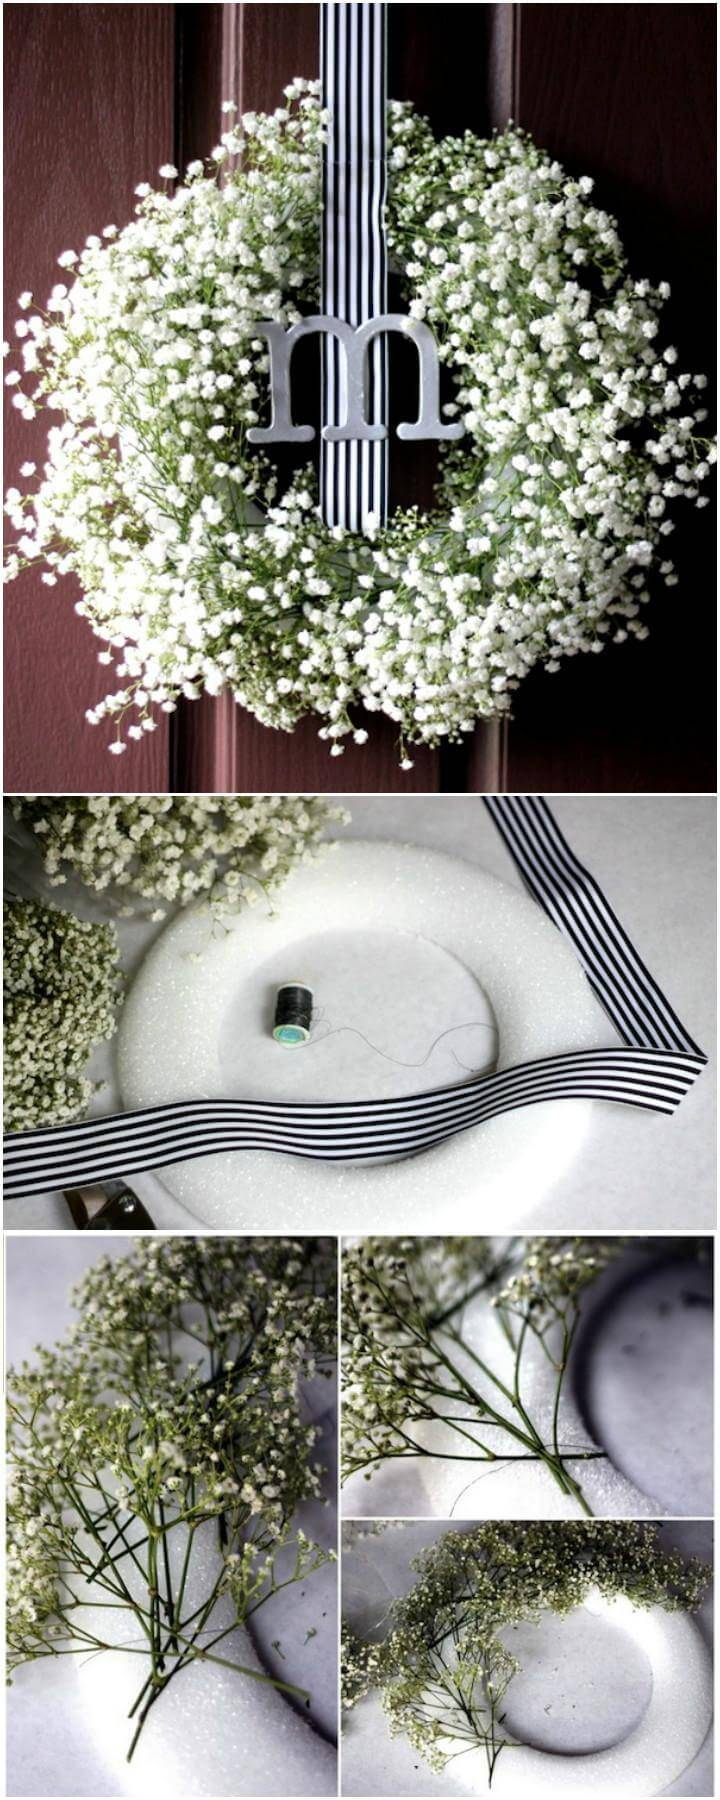 DIY Baby Breath Monogram Wreath